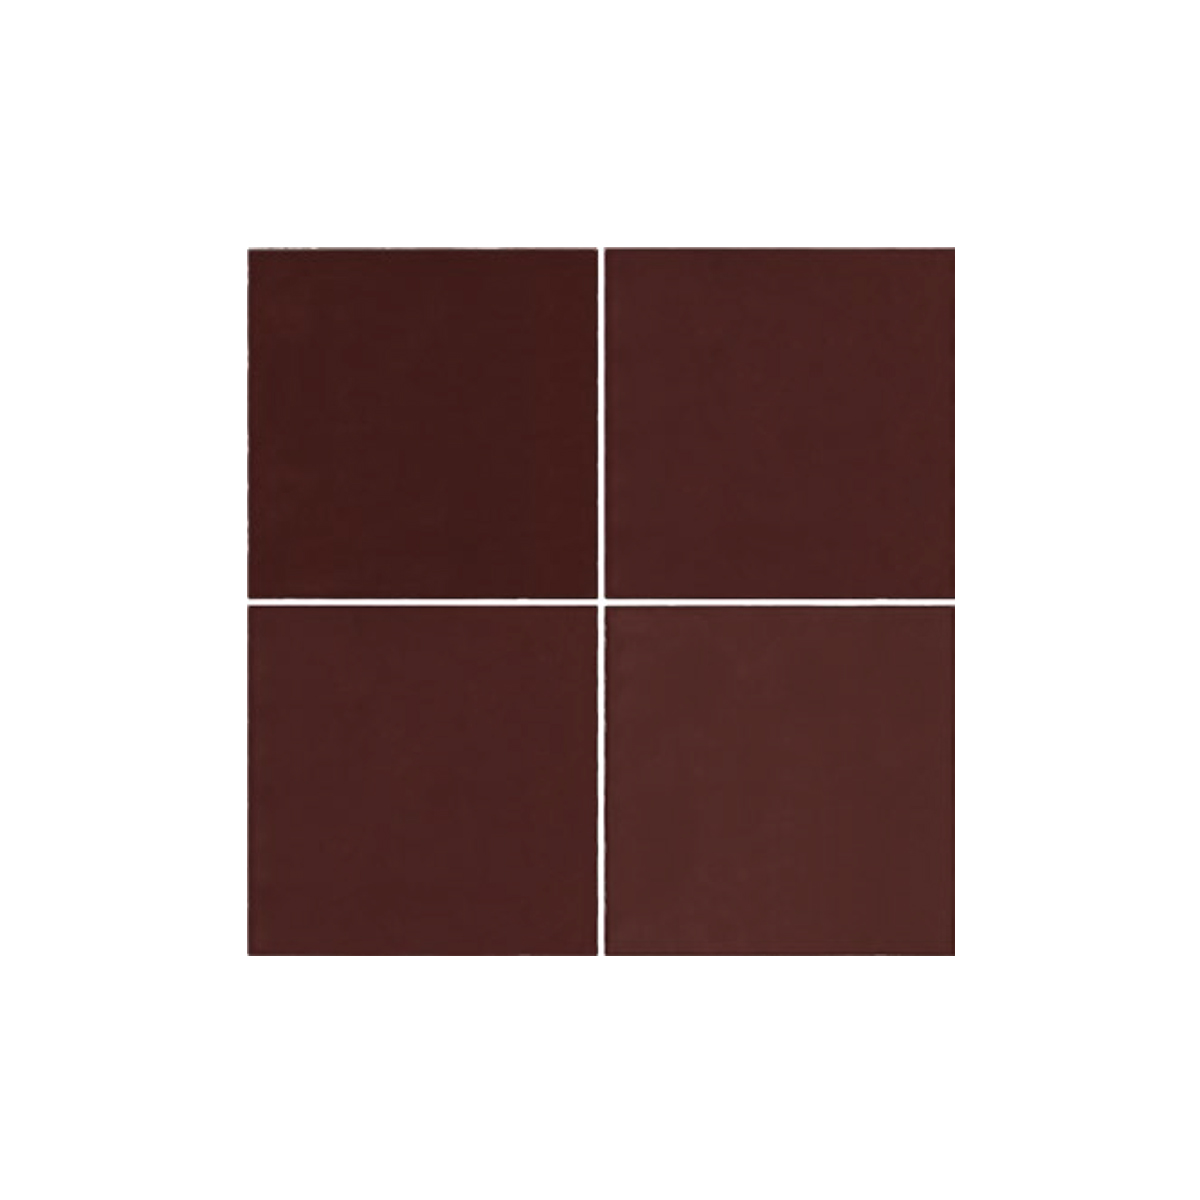 Casablanca - Red - Square Feature Tiles - 120x120mm